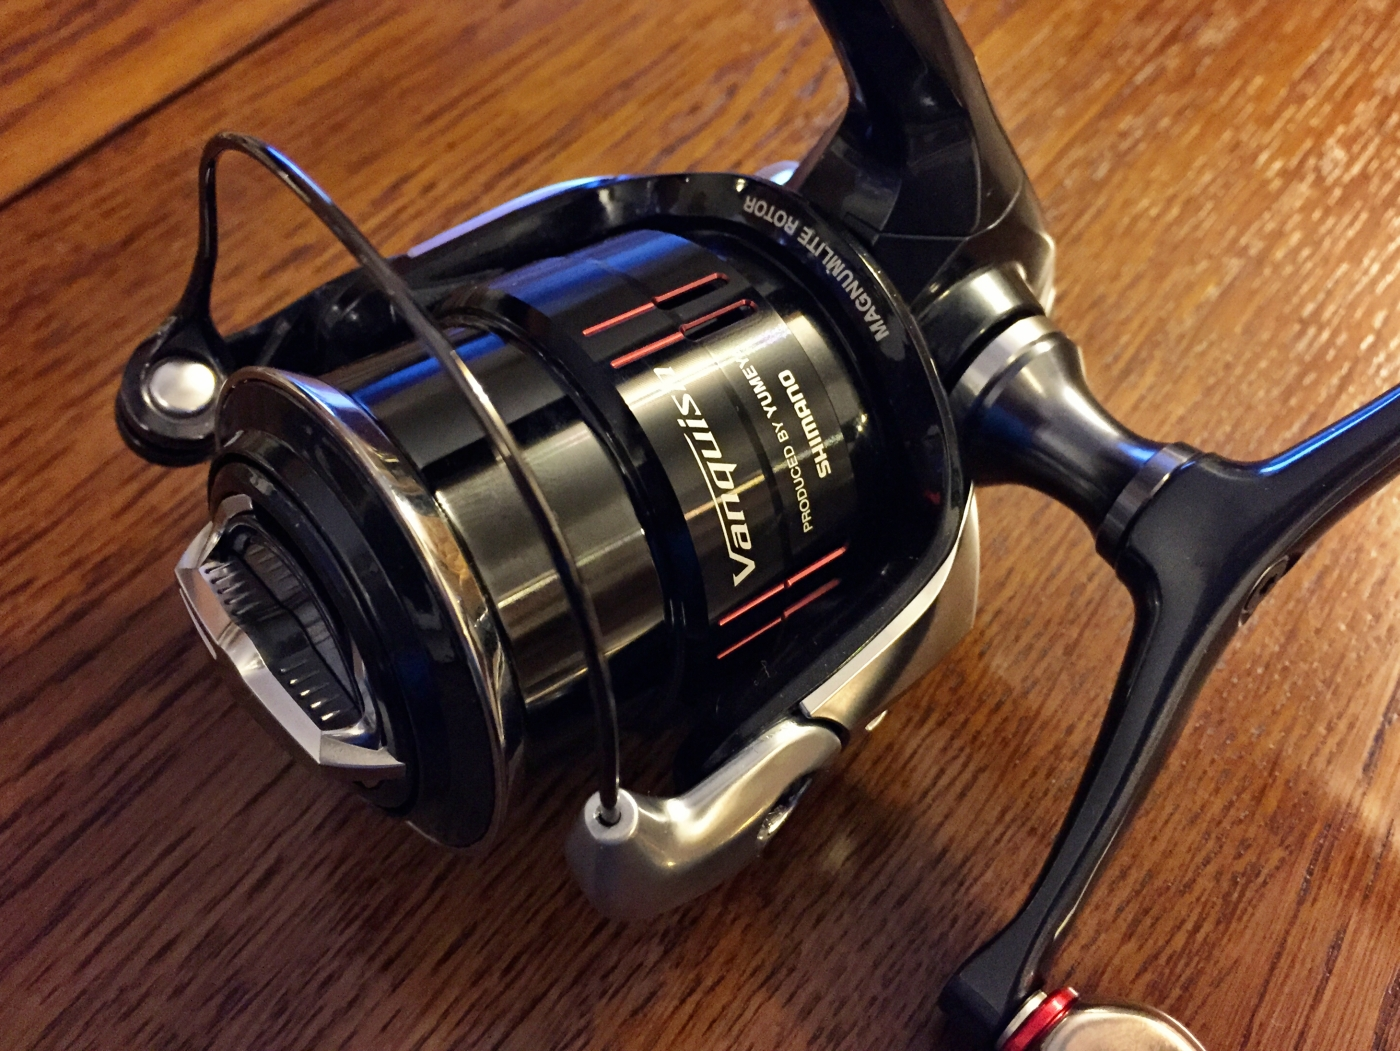 Tricked Out Shimano Vanquish With Yumeya And Livre Parts